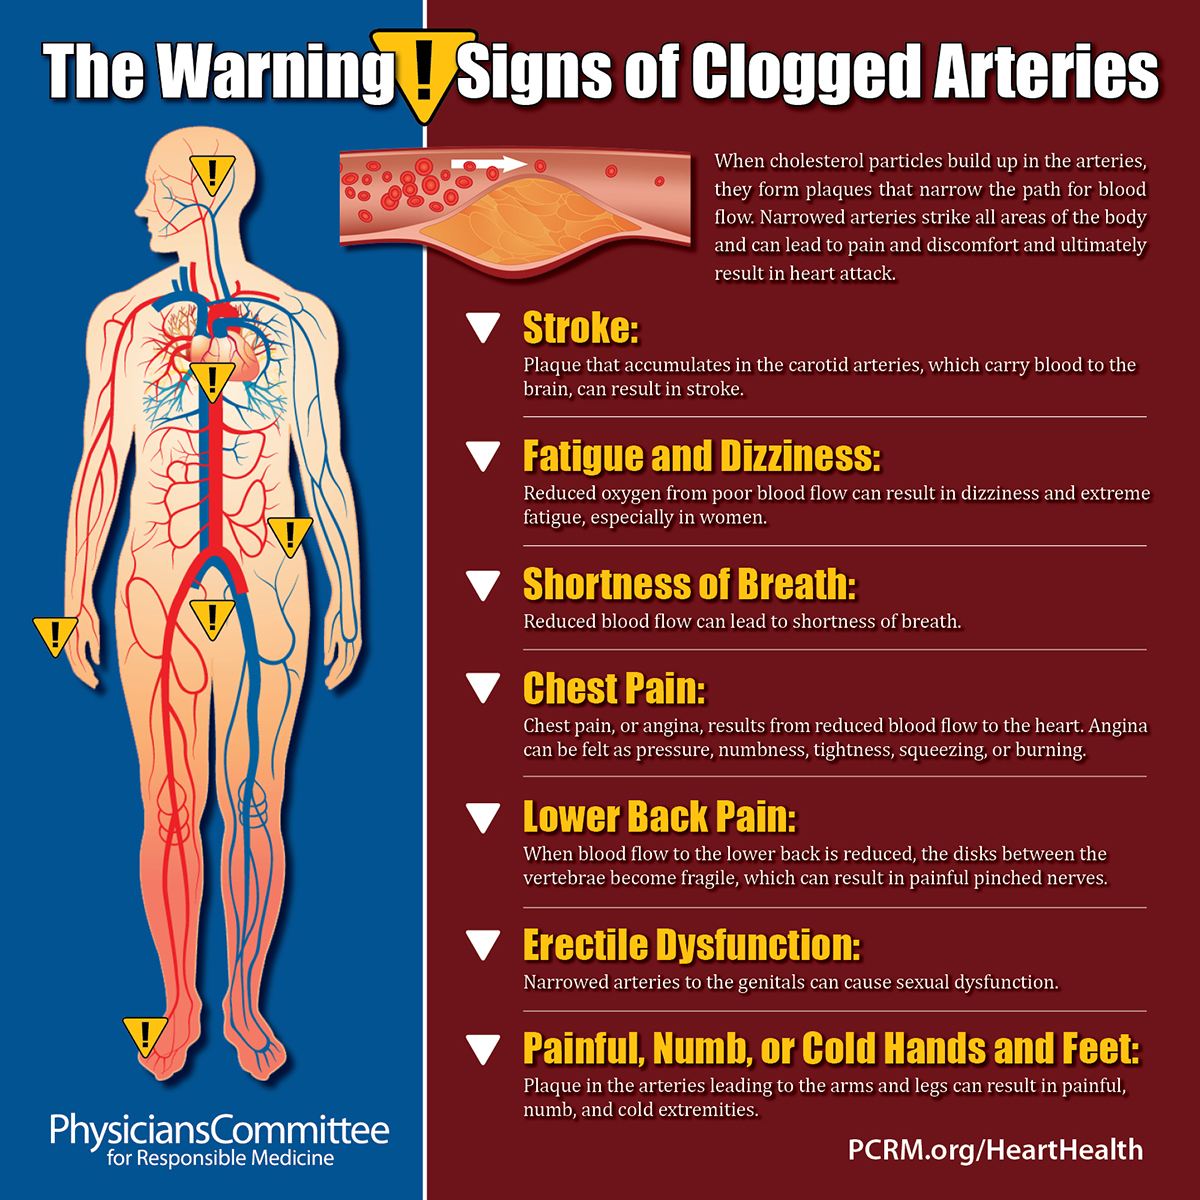 clogged-arteries-signs